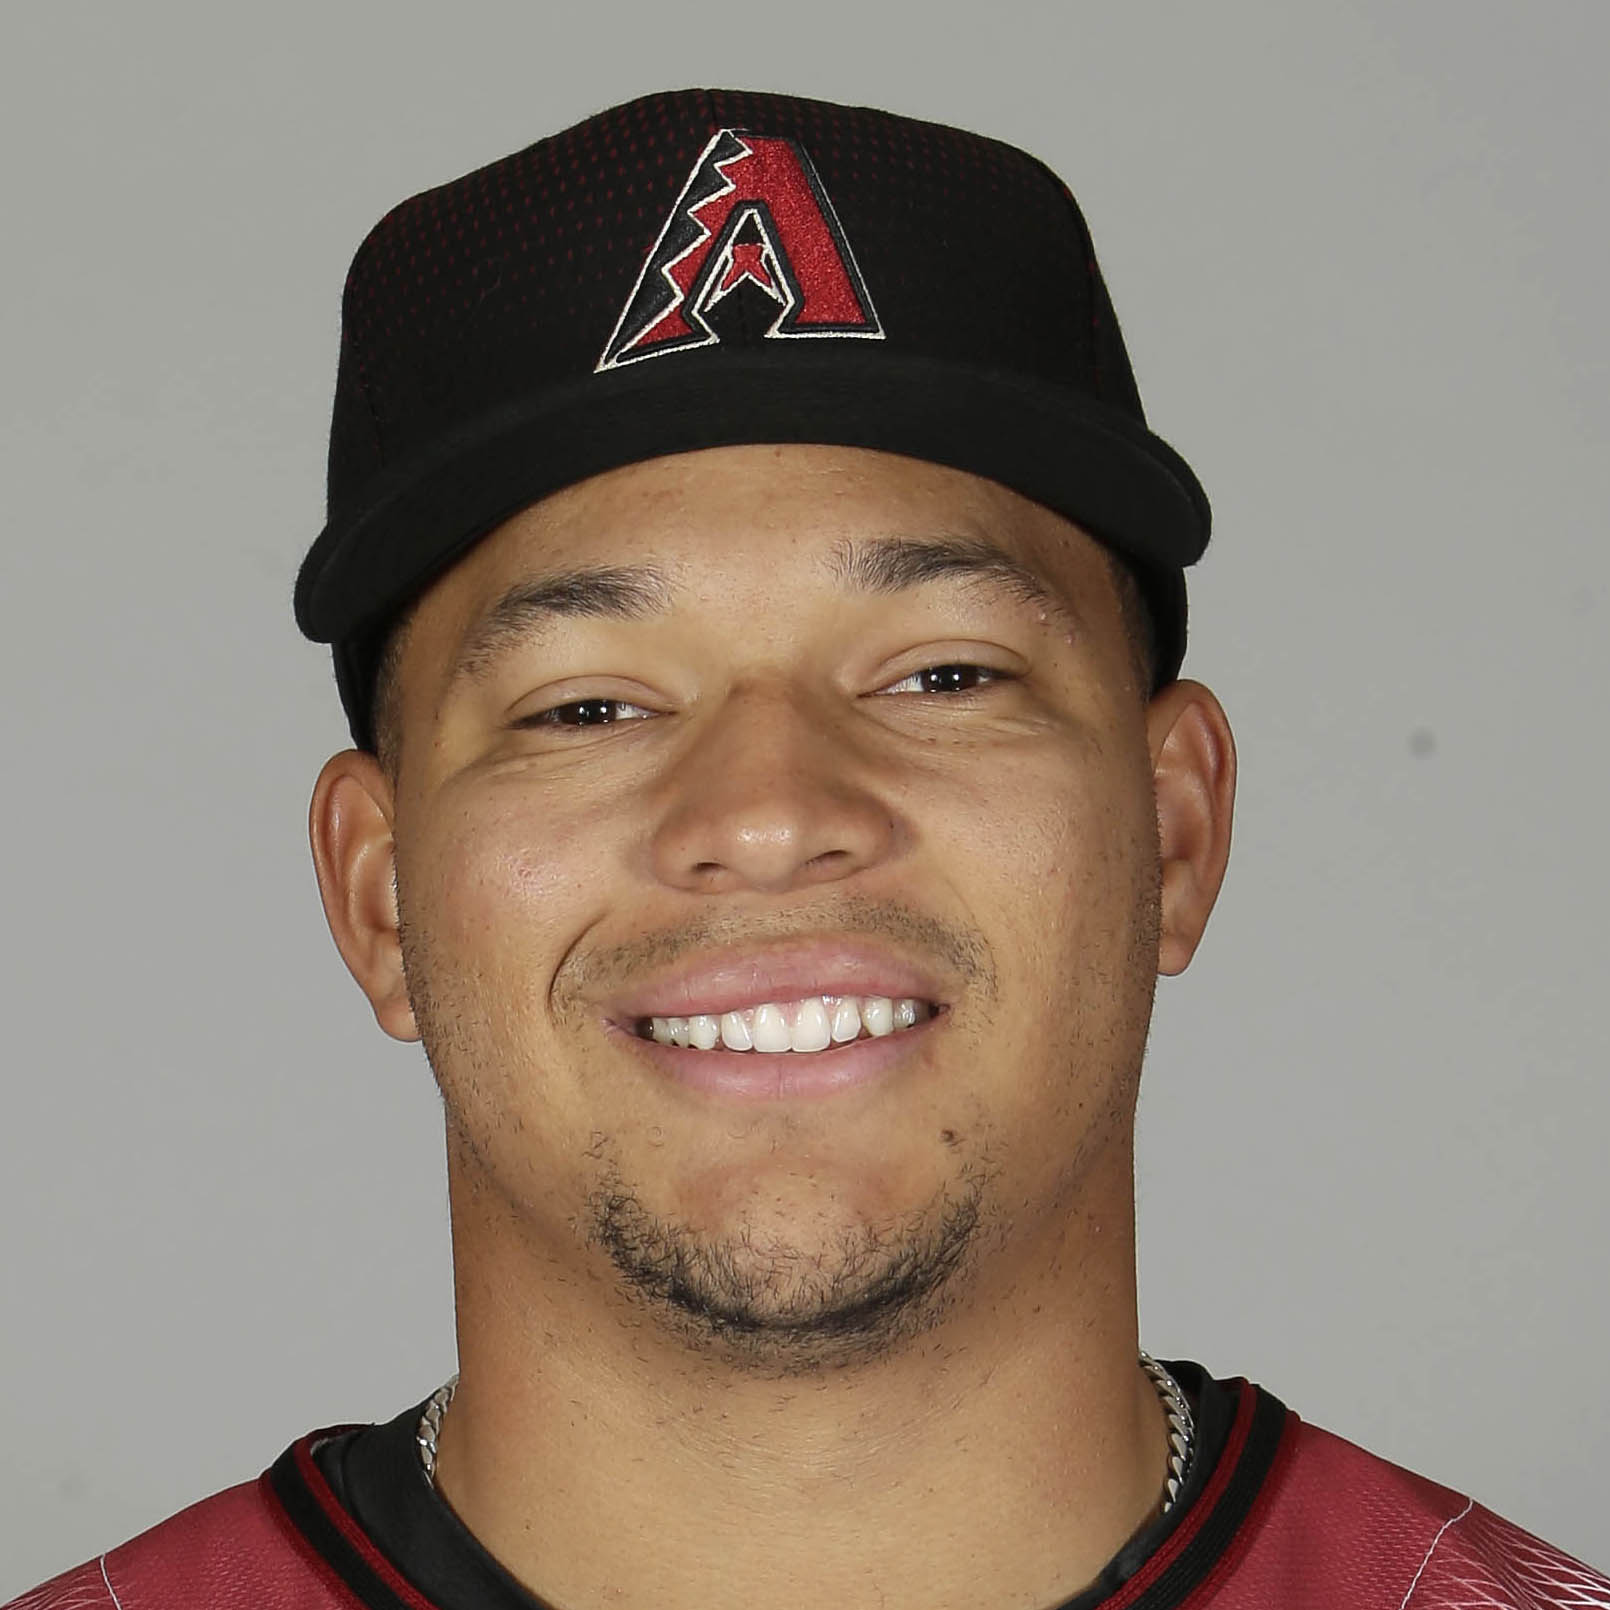 Taijuan Walker (R) Headshot